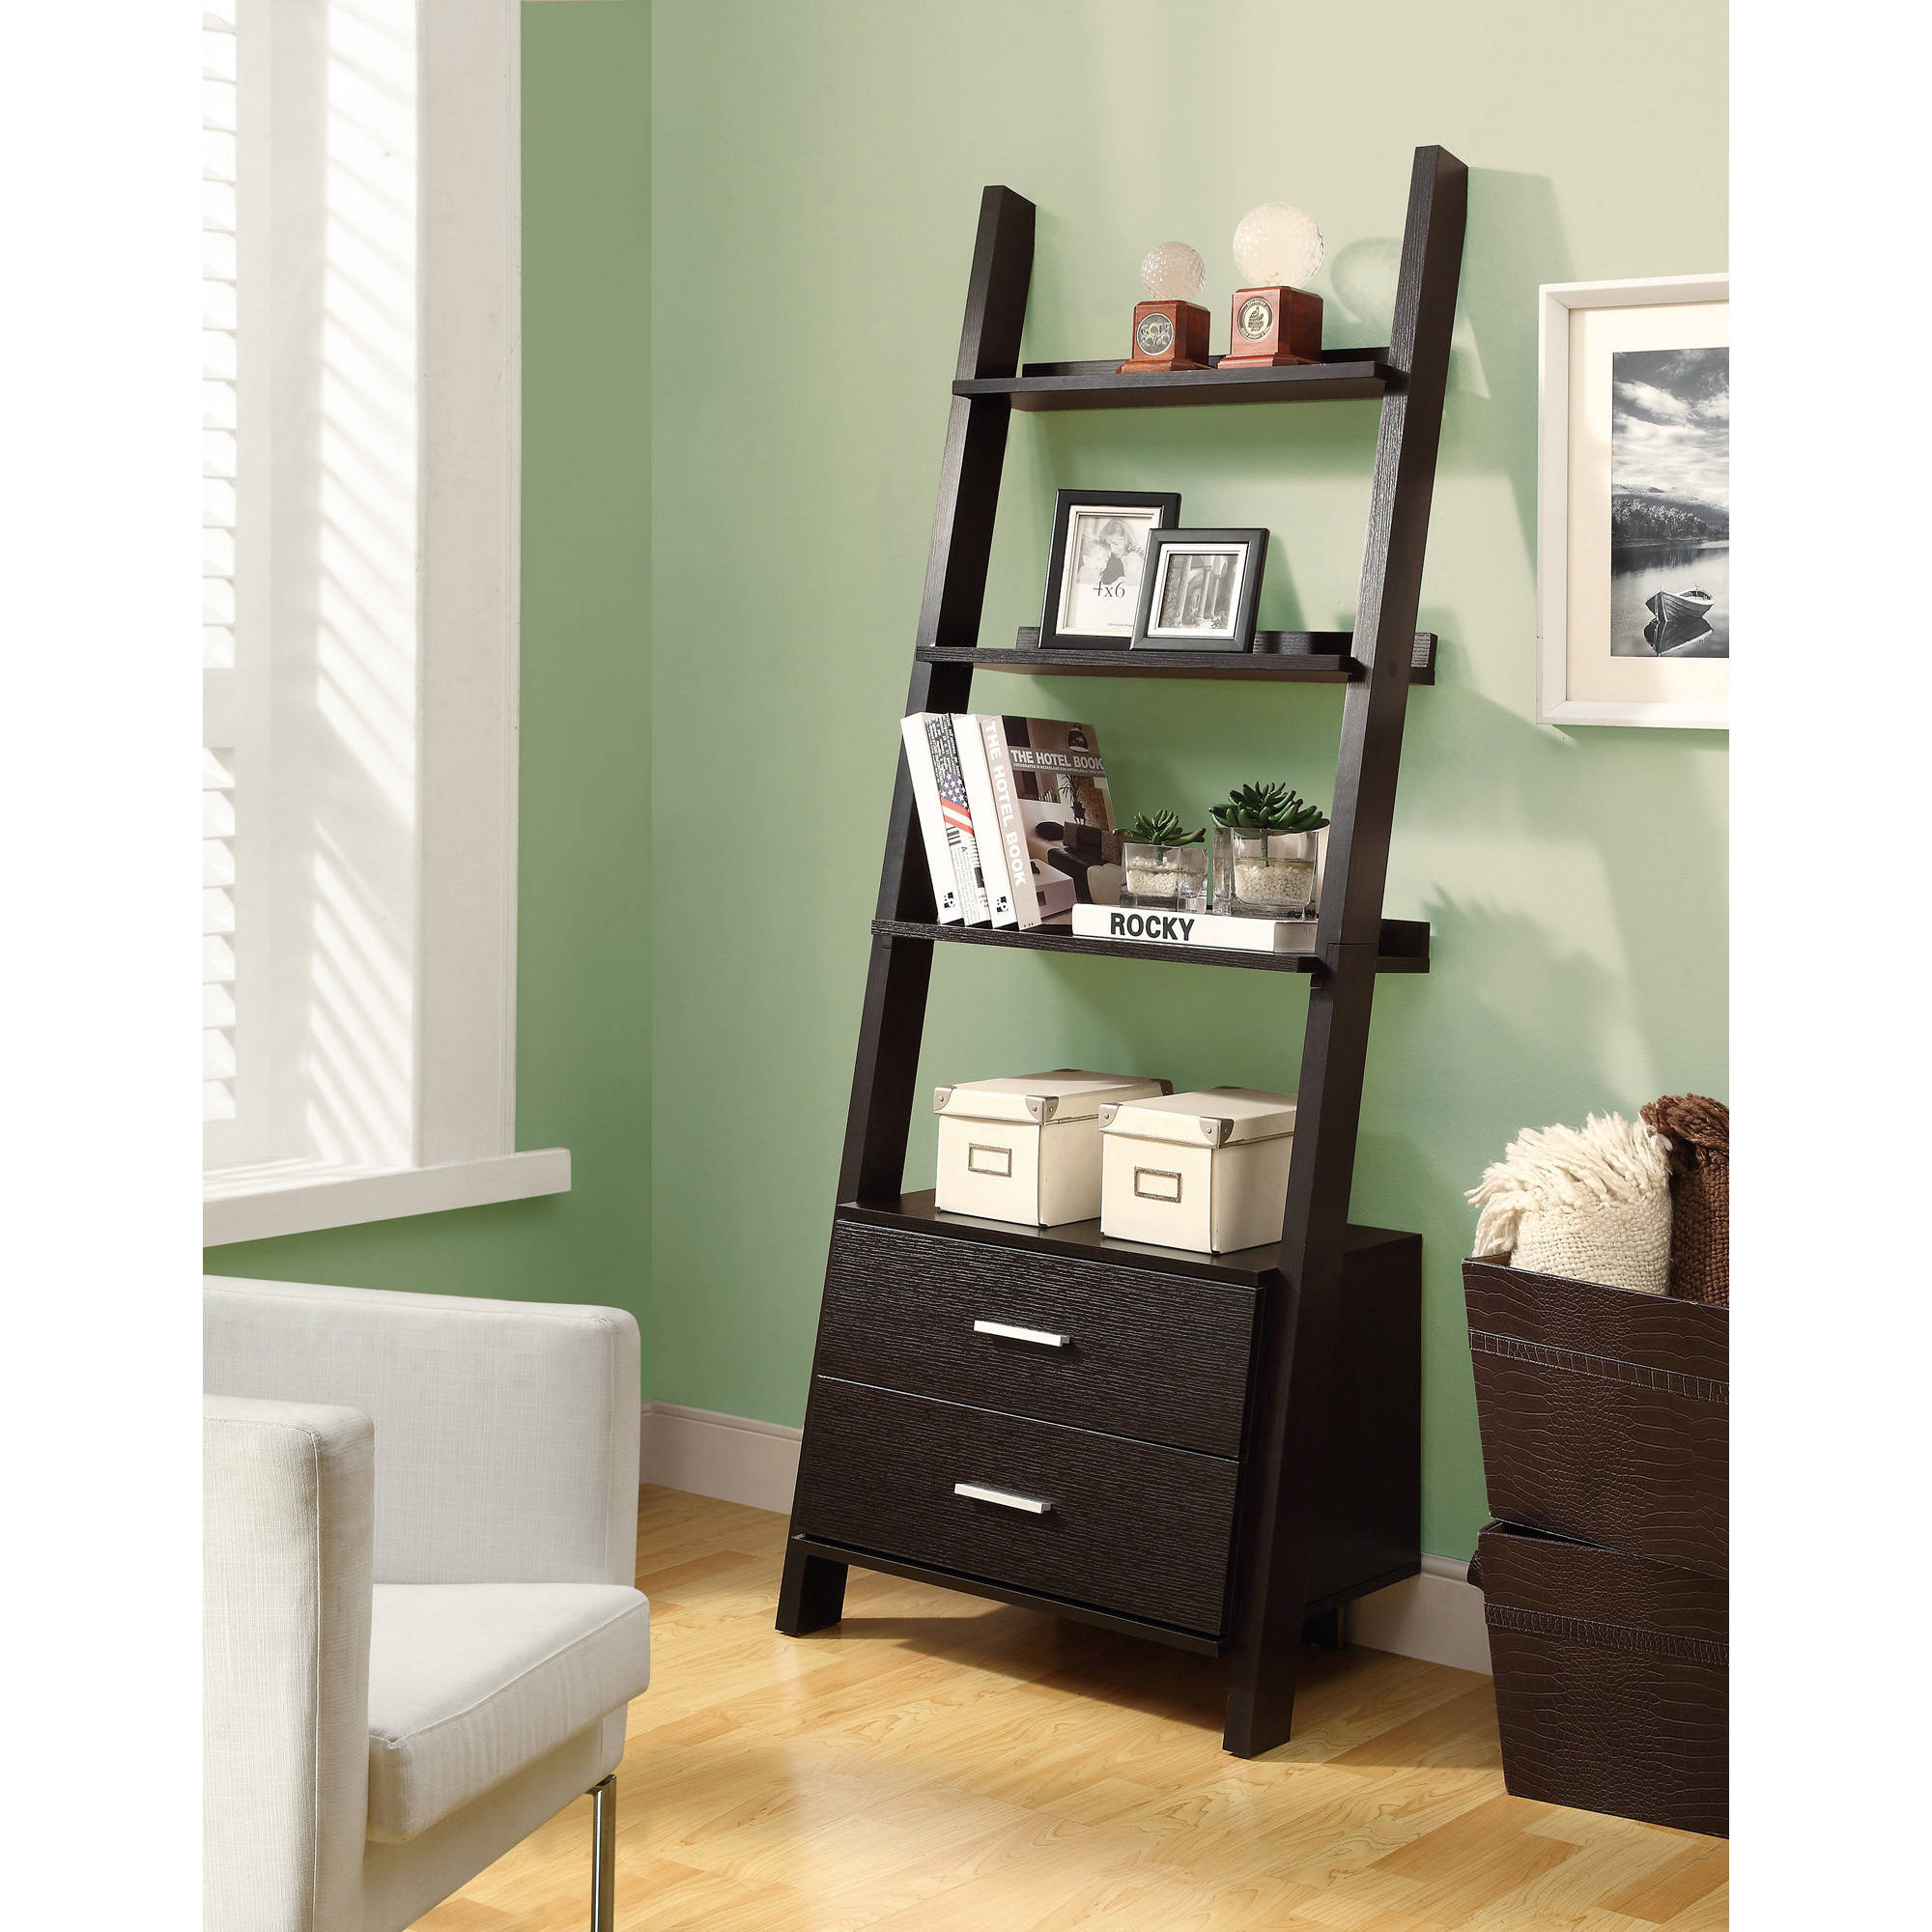 Monarch Bookcase 69